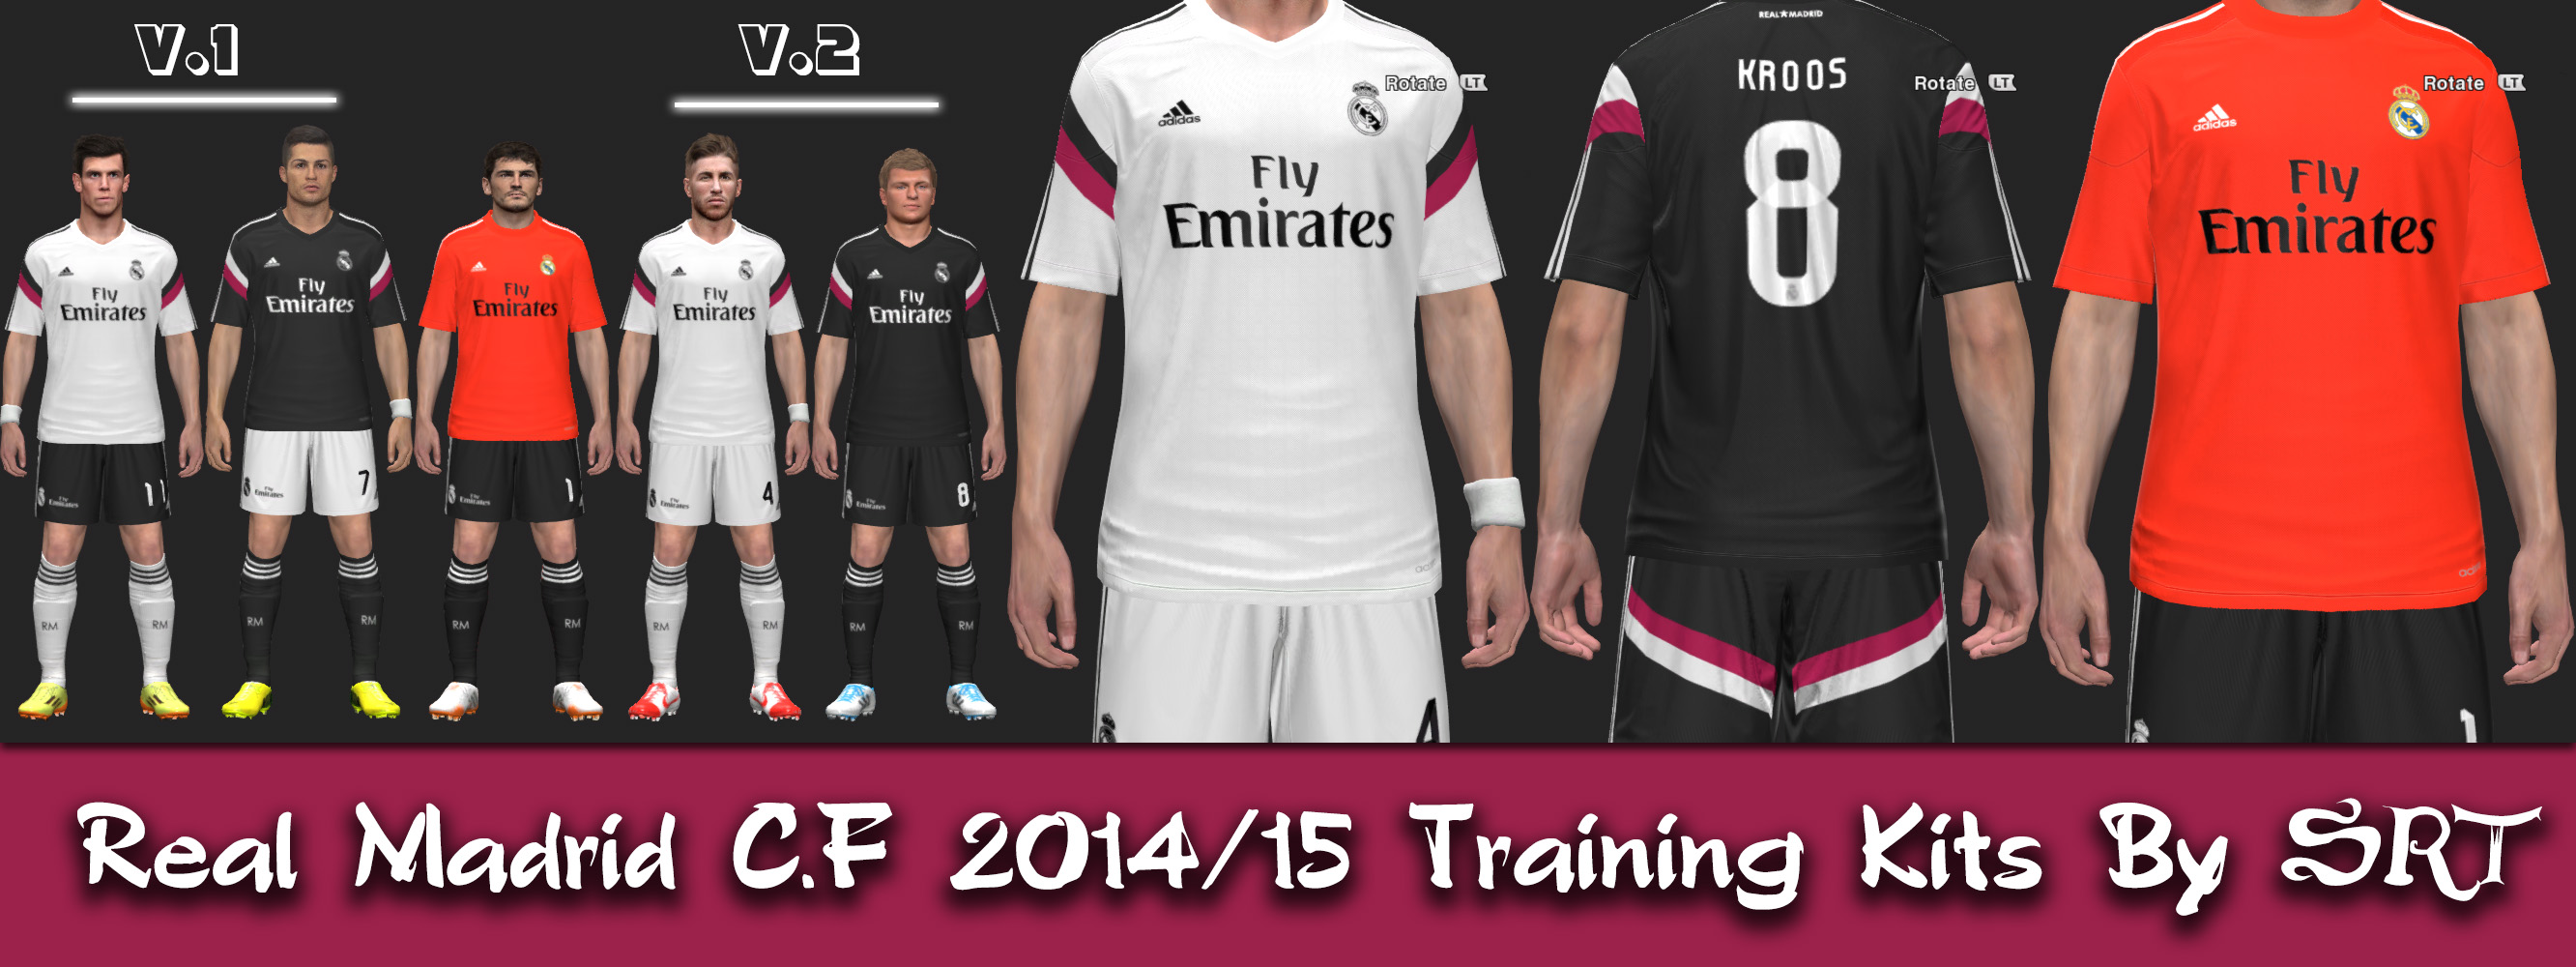 Real Madrid 12/13 Kitset Archives - PES Patch